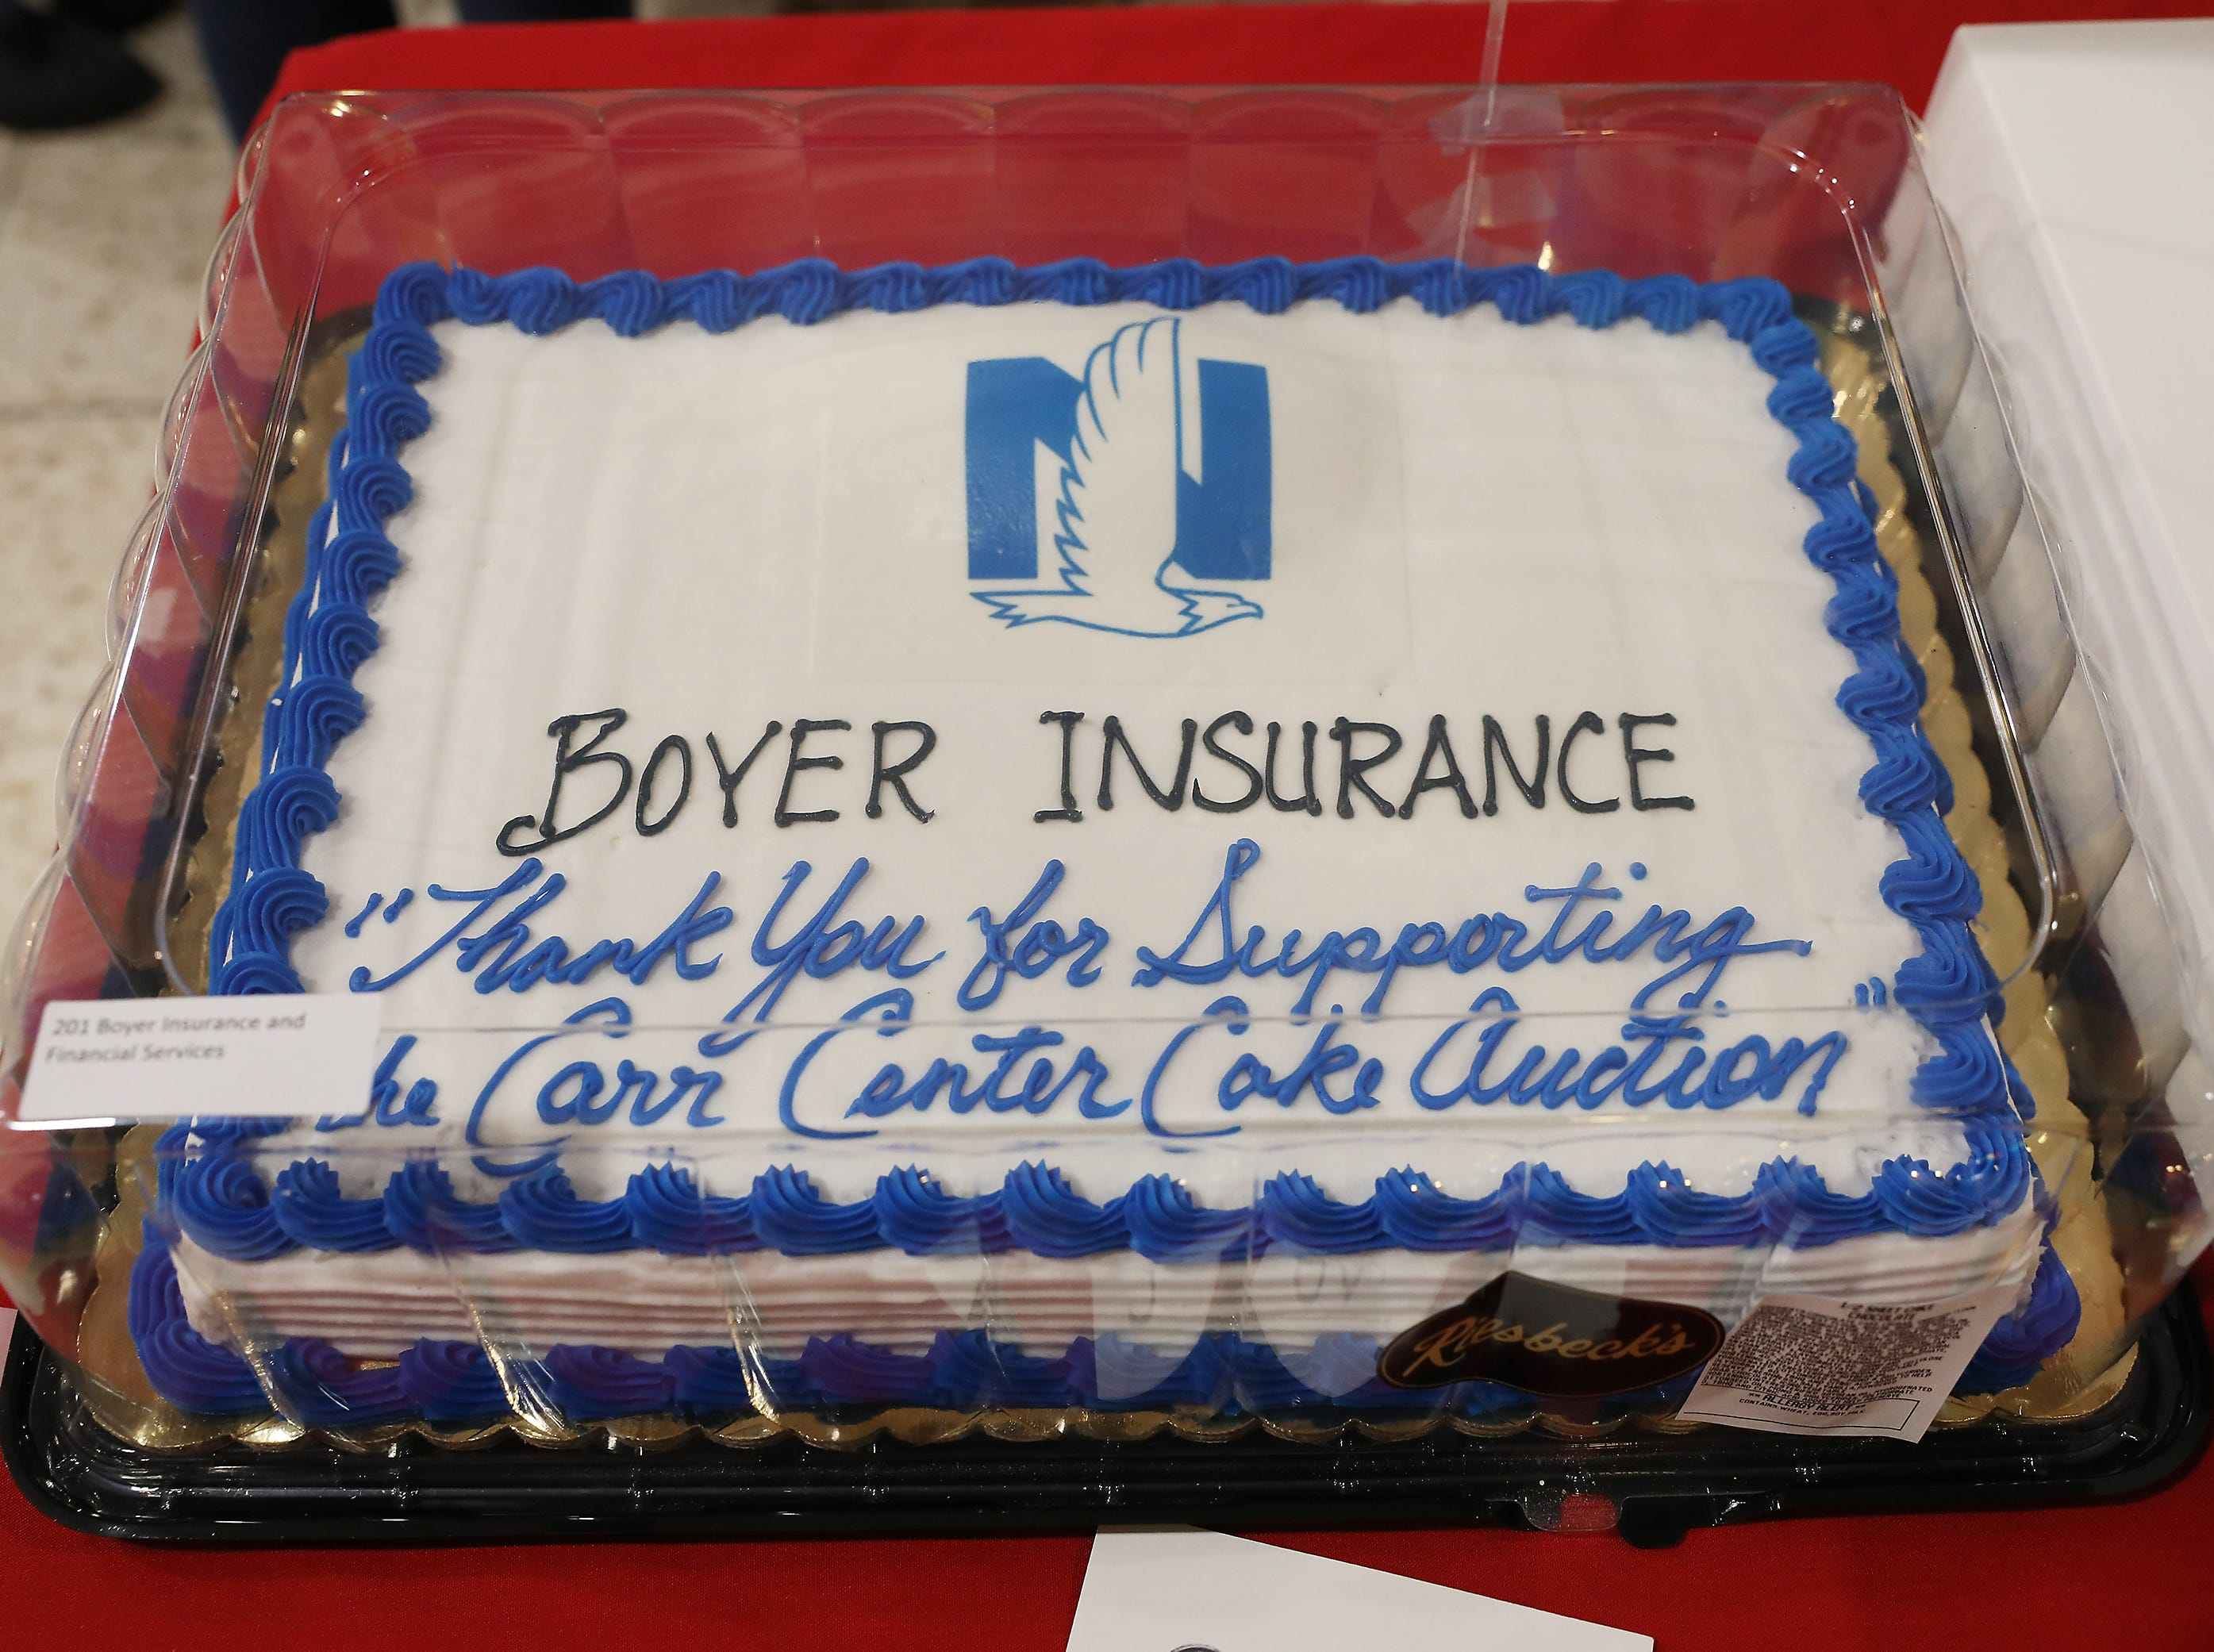 5:30 P.M. Thursday cake 201 Boyer Insurance and Financial Services - 2 tickets to Memorial Tournament, parking pass, shuttle, hospitality tent for 2